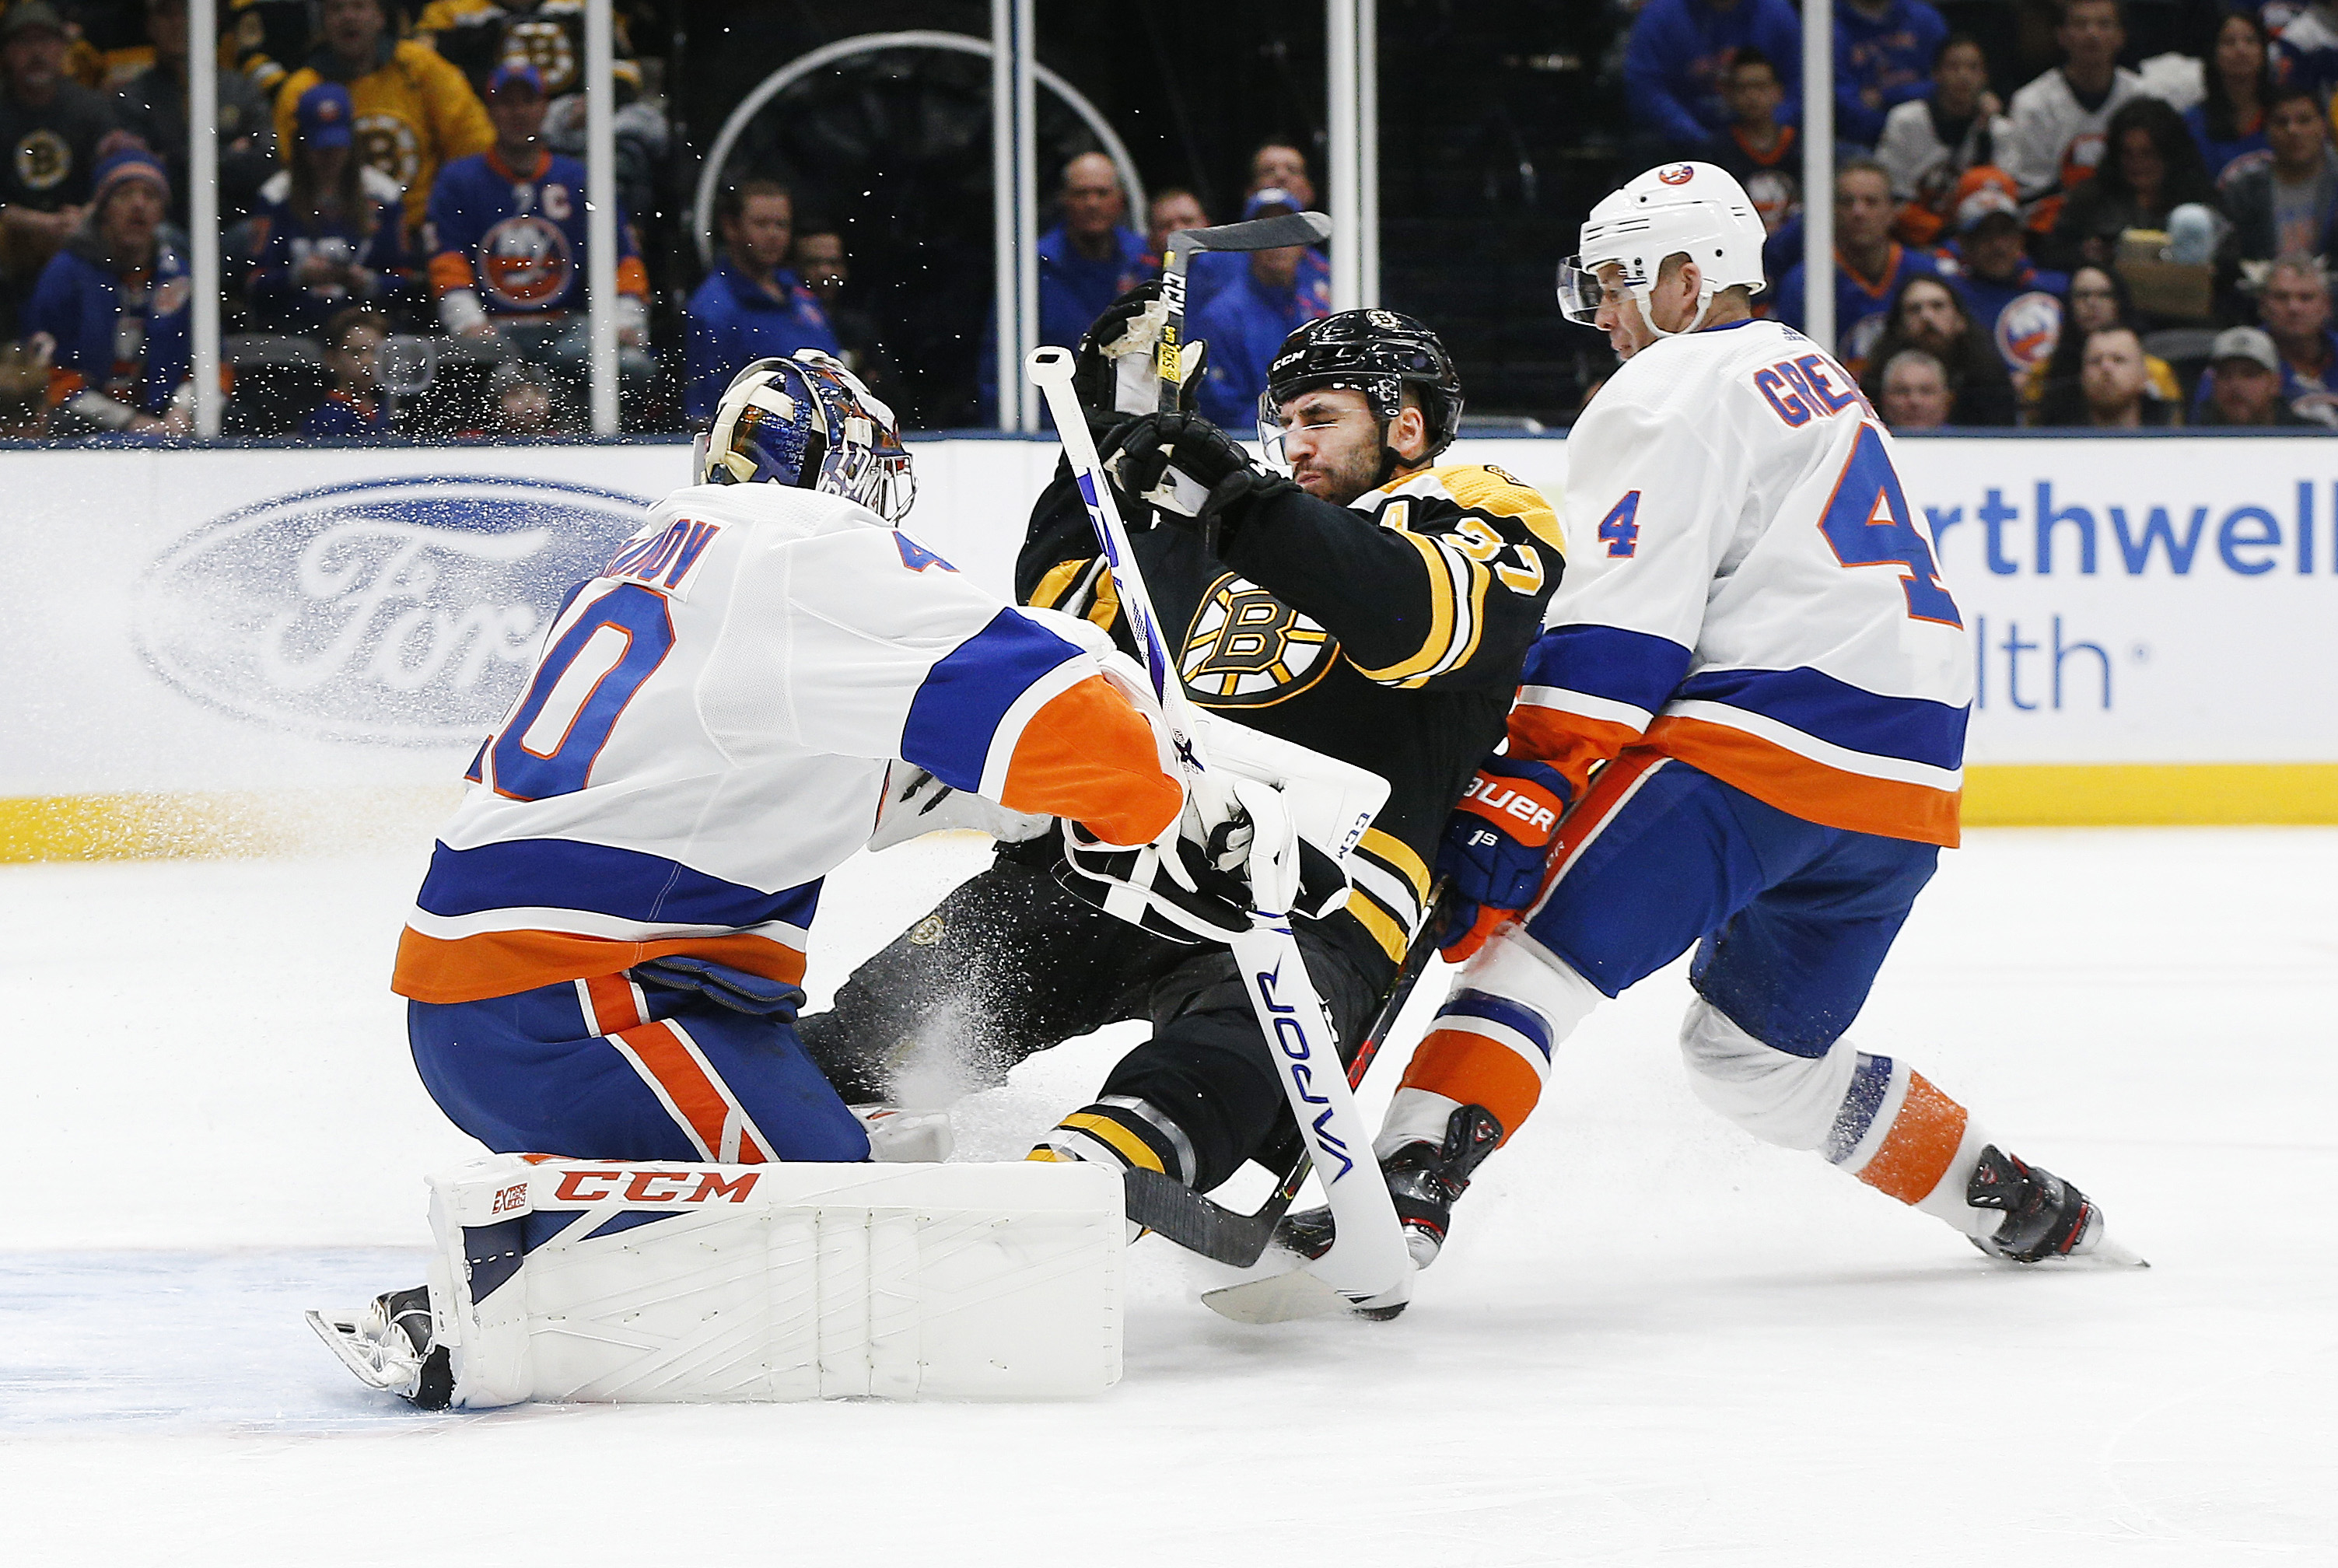 Feb 29, 2020; Uniondale, New York, USA; Boston Bruins center Patrice Bergeron (37) collides with New York Islanders goaltender Semyon Varlamov (40) during the first period at Nassau Veterans Memorial Coliseum. Mandatory Credit: Andy Marlin-USA TODAY Sports